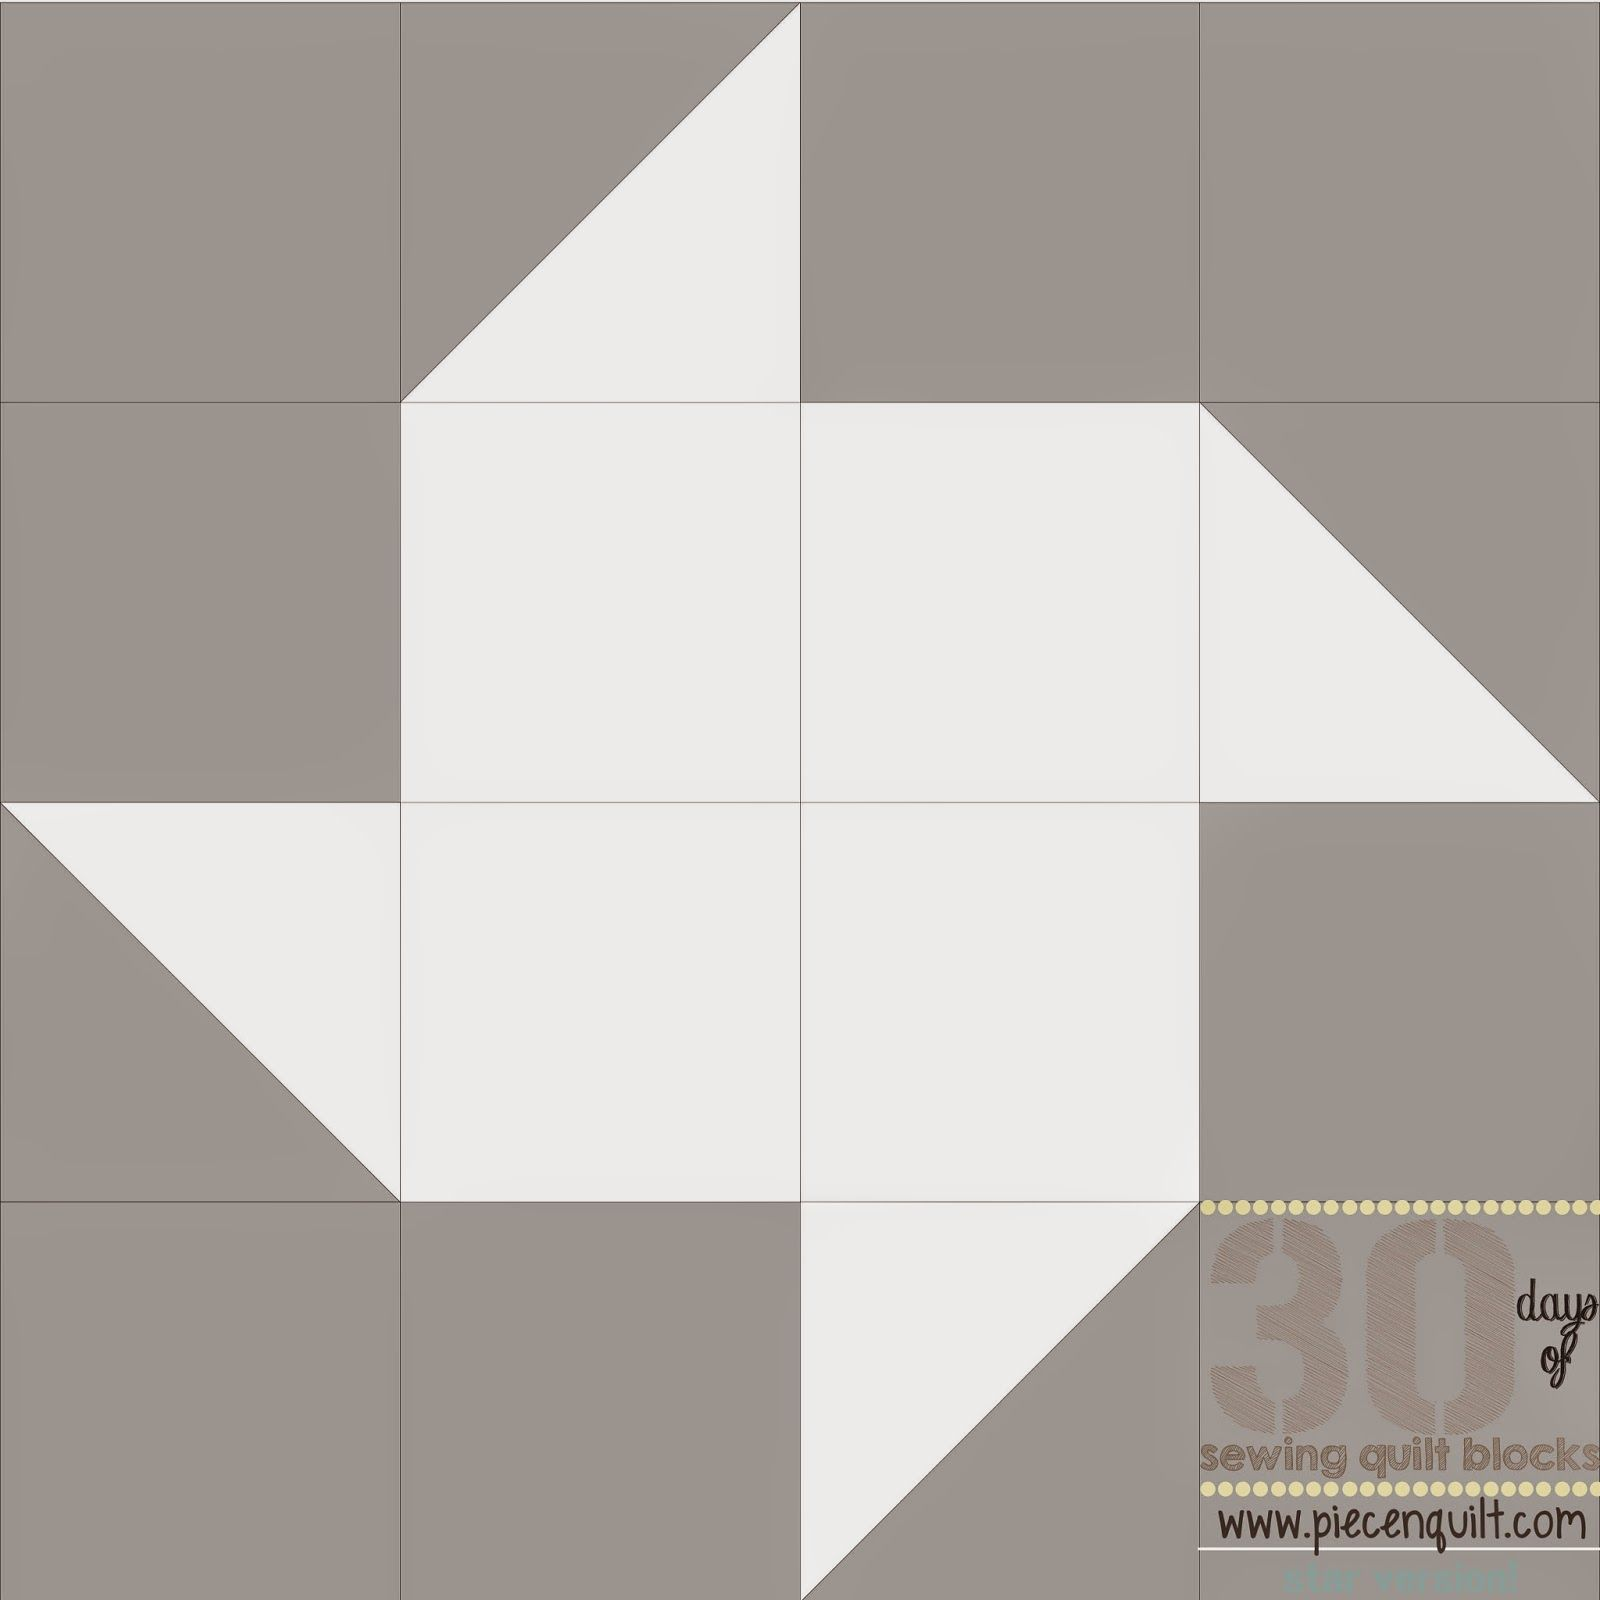 Piece N Quilt: How to: Pinwheel Star Quilt Block- 30 Days of Sewing Quilt Blocks- Star Version!